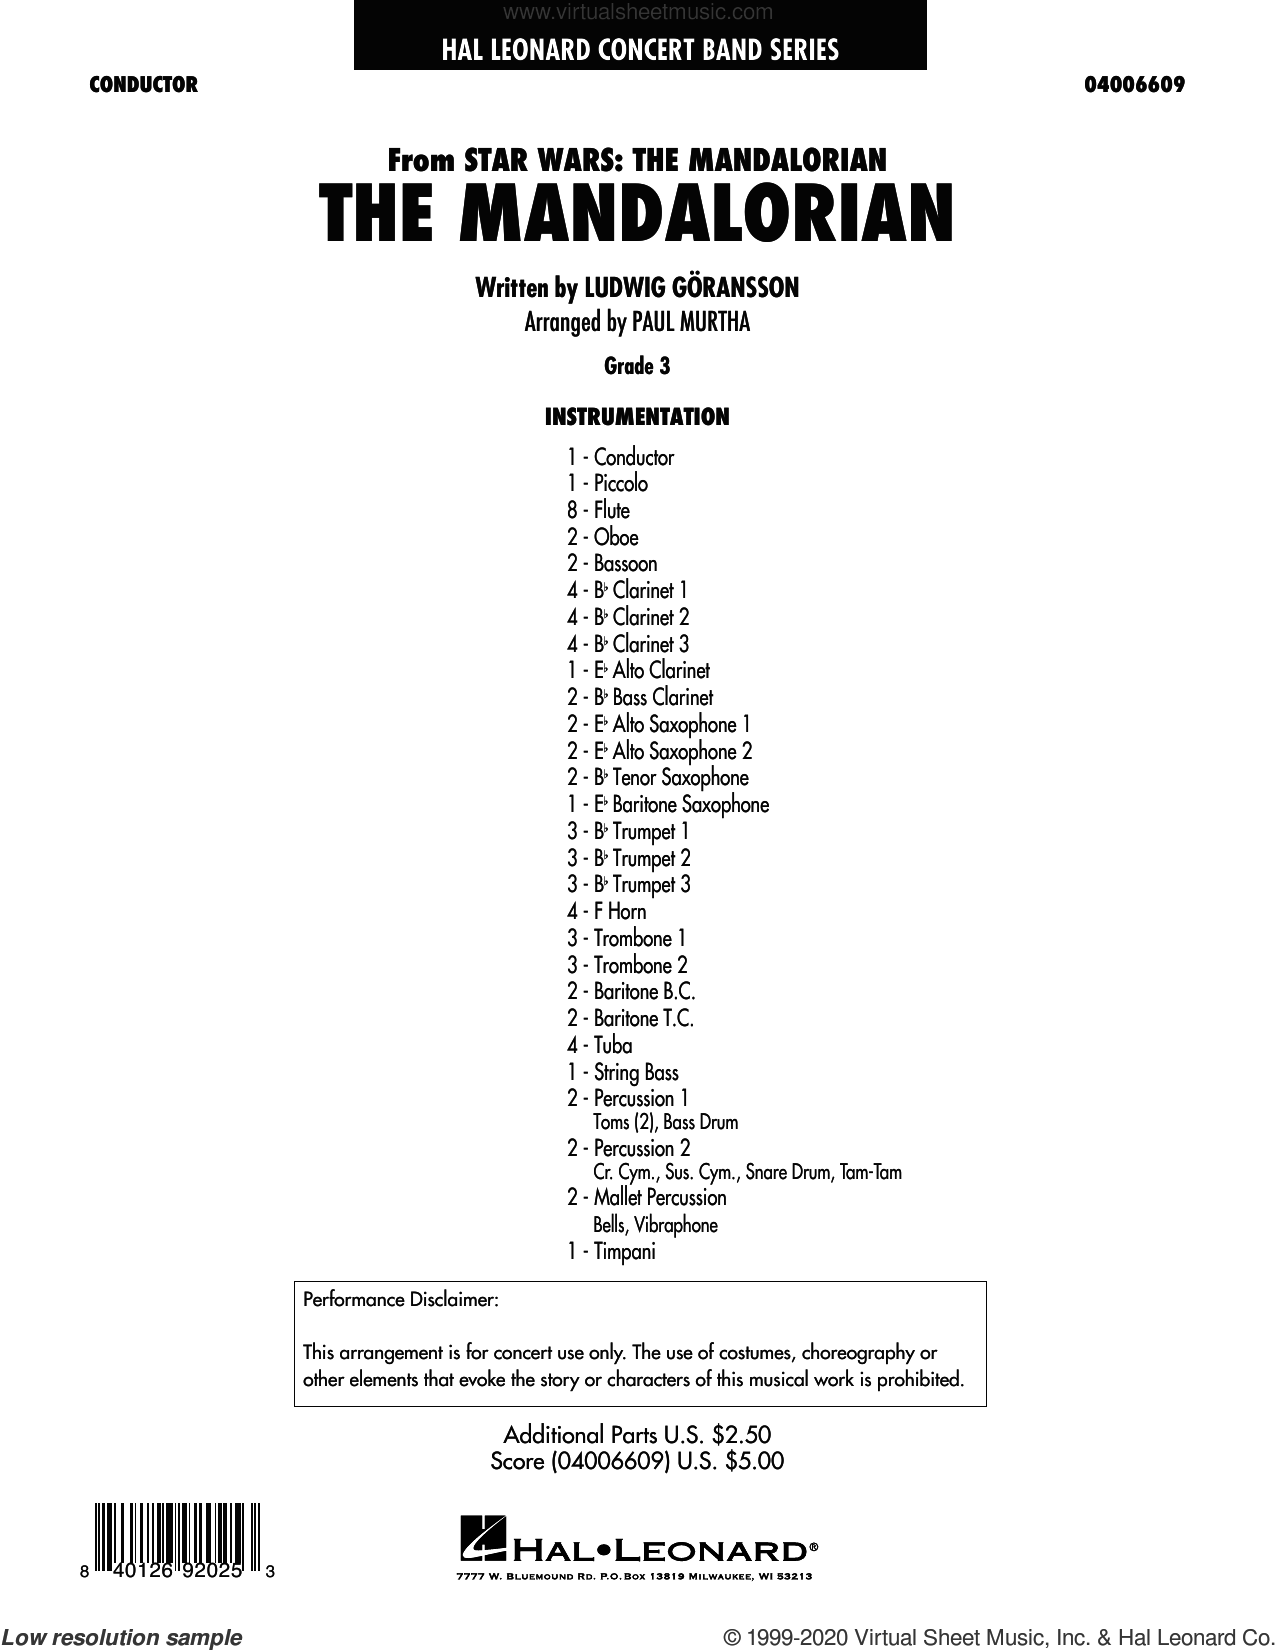 The Mandalorian (from Star Wars: The Mandalorian) (arr. Paul Murtha) (COMPLETE) sheet music for concert band by Paul Murtha and Ludwig Goransson, intermediate skill level